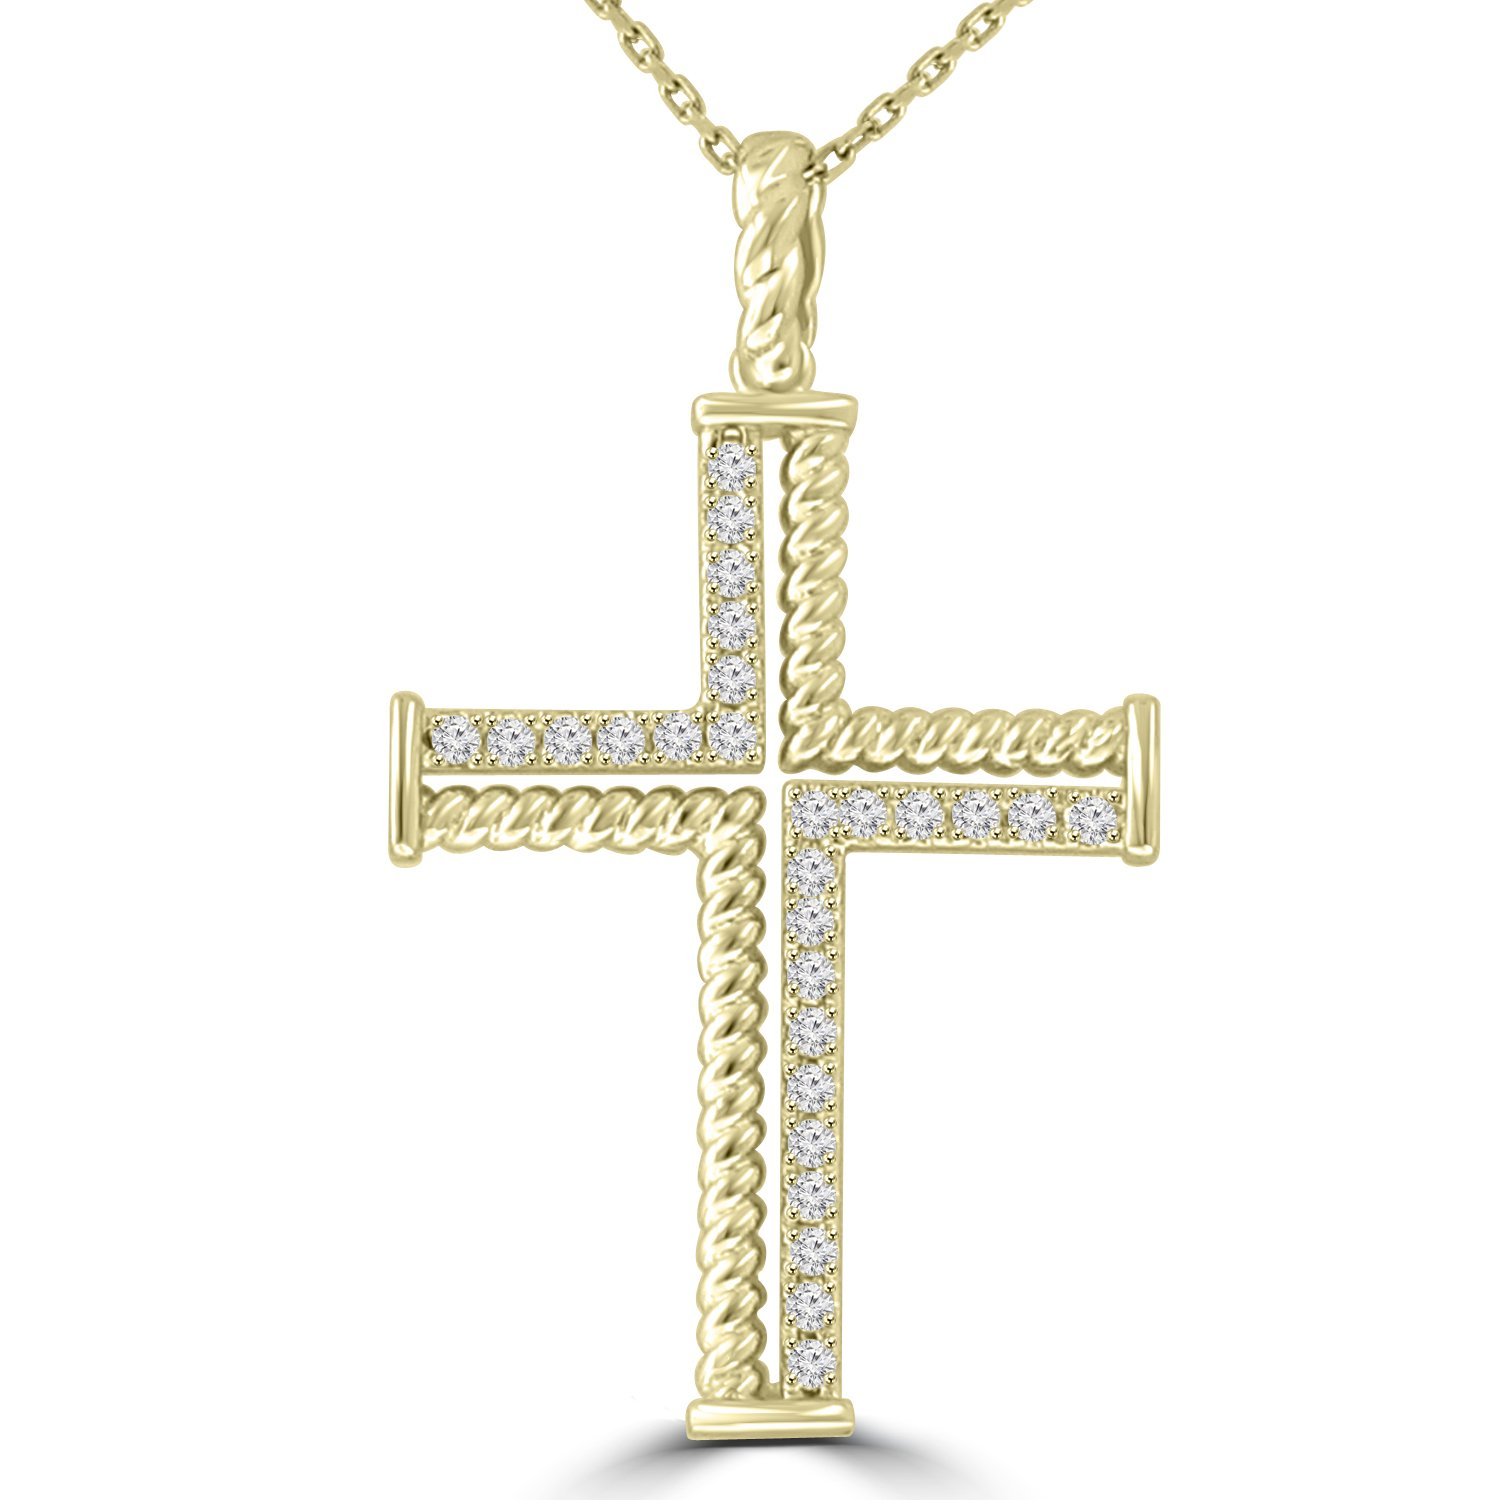 0.37 ct Ladies Round Cut Diamond Cross Pendant Necklace (G Color SI-1 Clarity) in 14 kt Yellow Gold